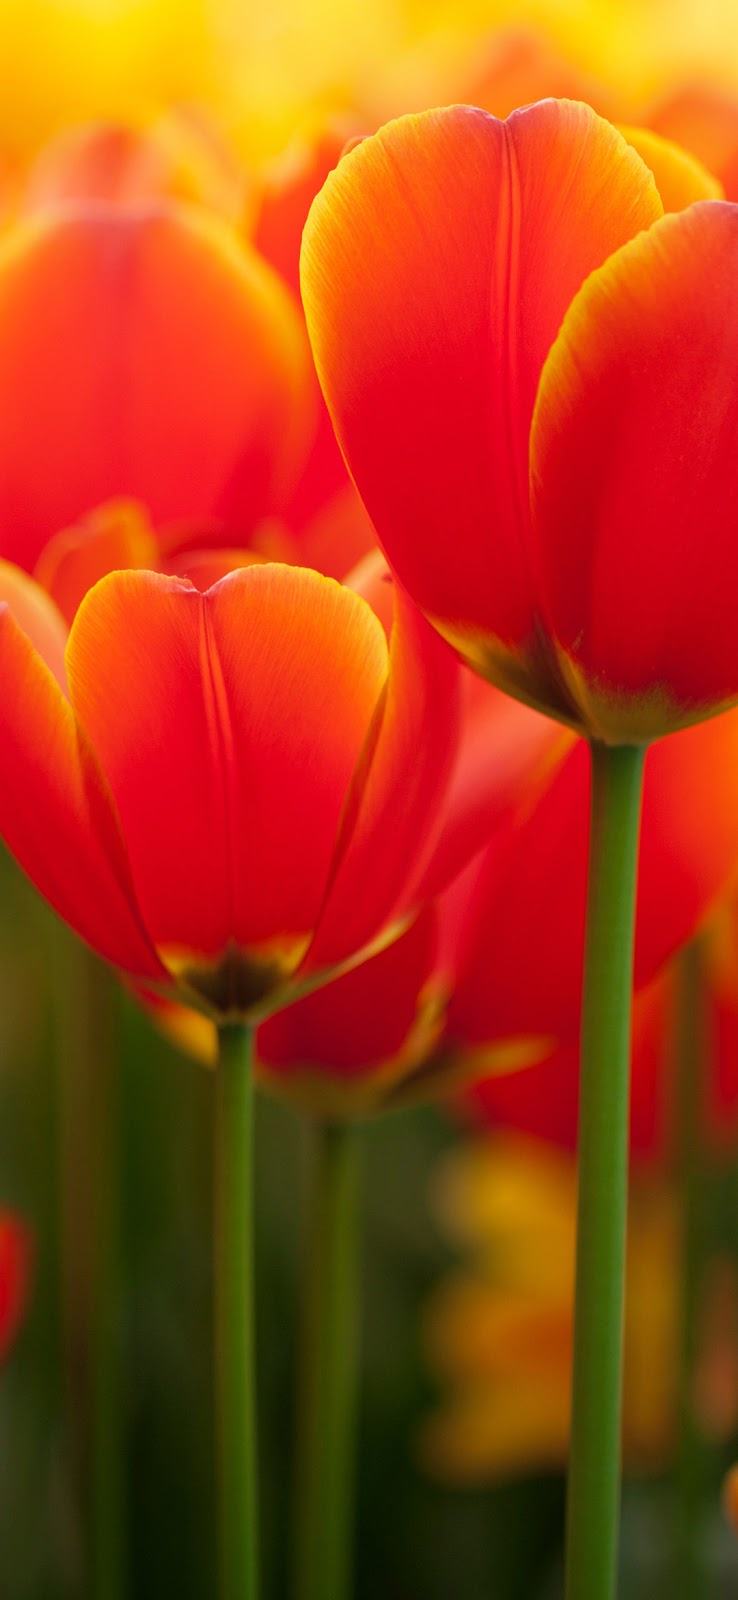 orange tulips in bloom wallpaper